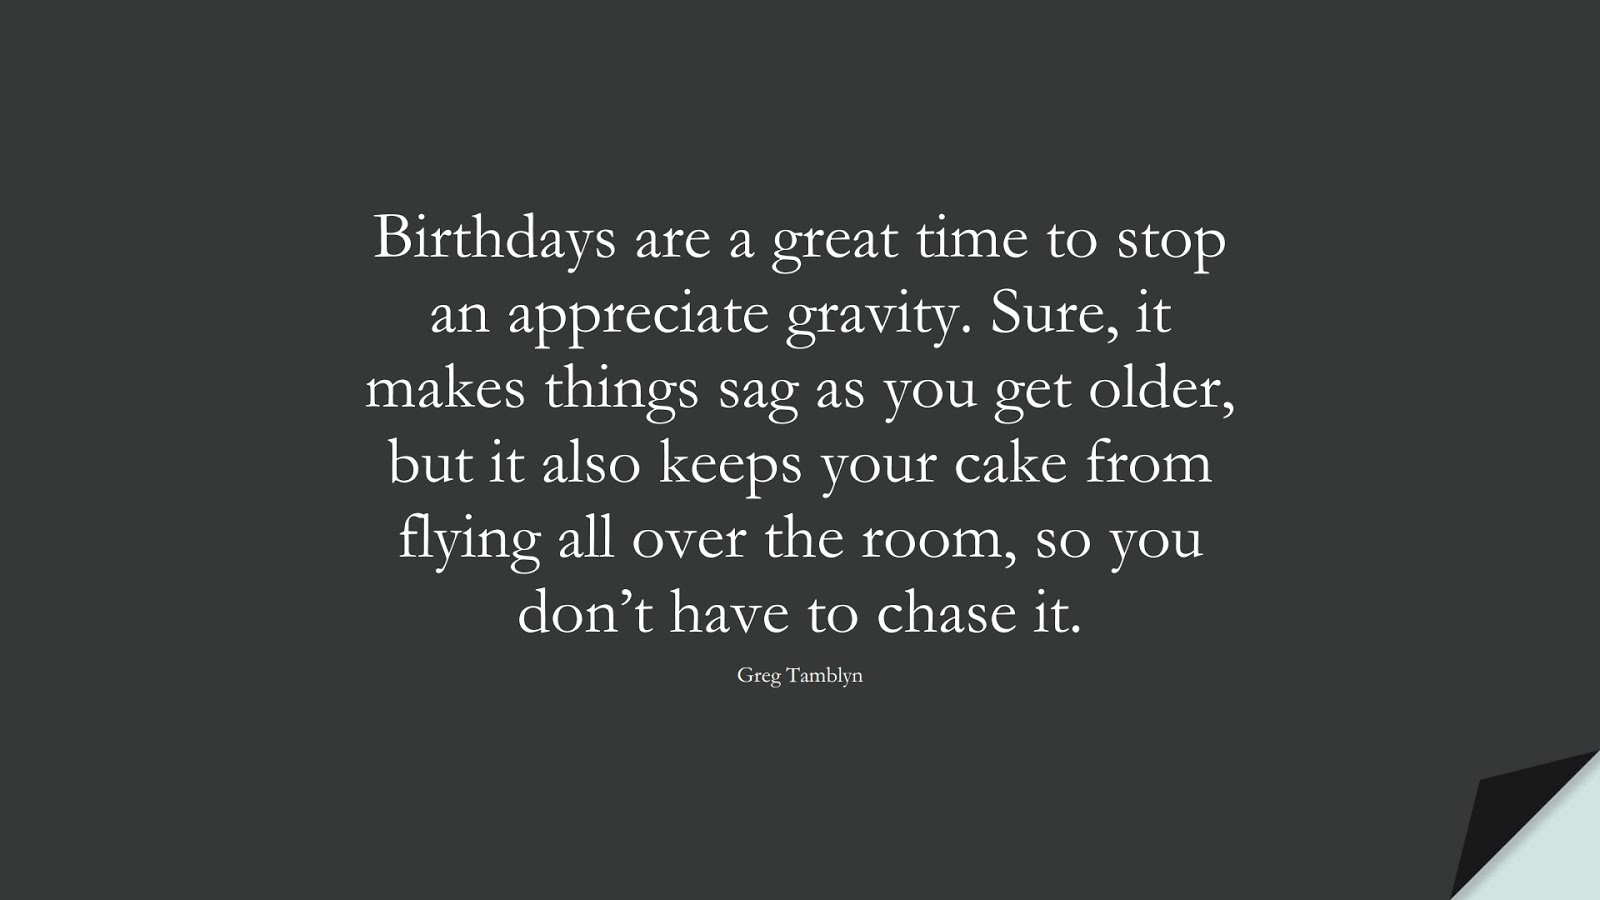 Birthdays are a great time to stop an appreciate gravity. Sure, it makes things sag as you get older, but it also keeps your cake from flying all over the room, so you don't have to chase it. (Greg Tamblyn);  #BirthdayQuotes